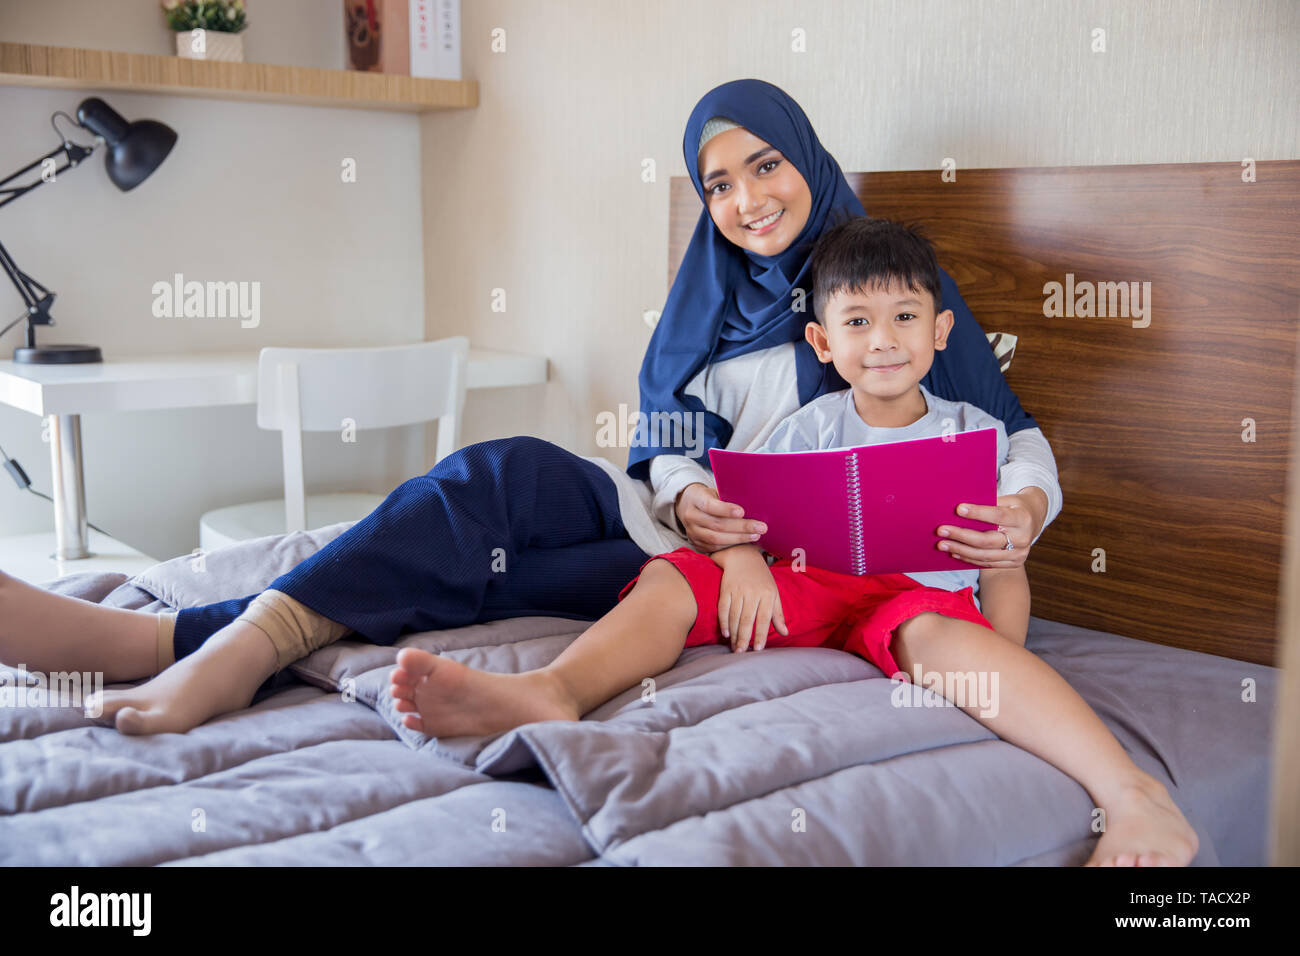 beautiful asian woman with hijab reading book with son - Stock Image